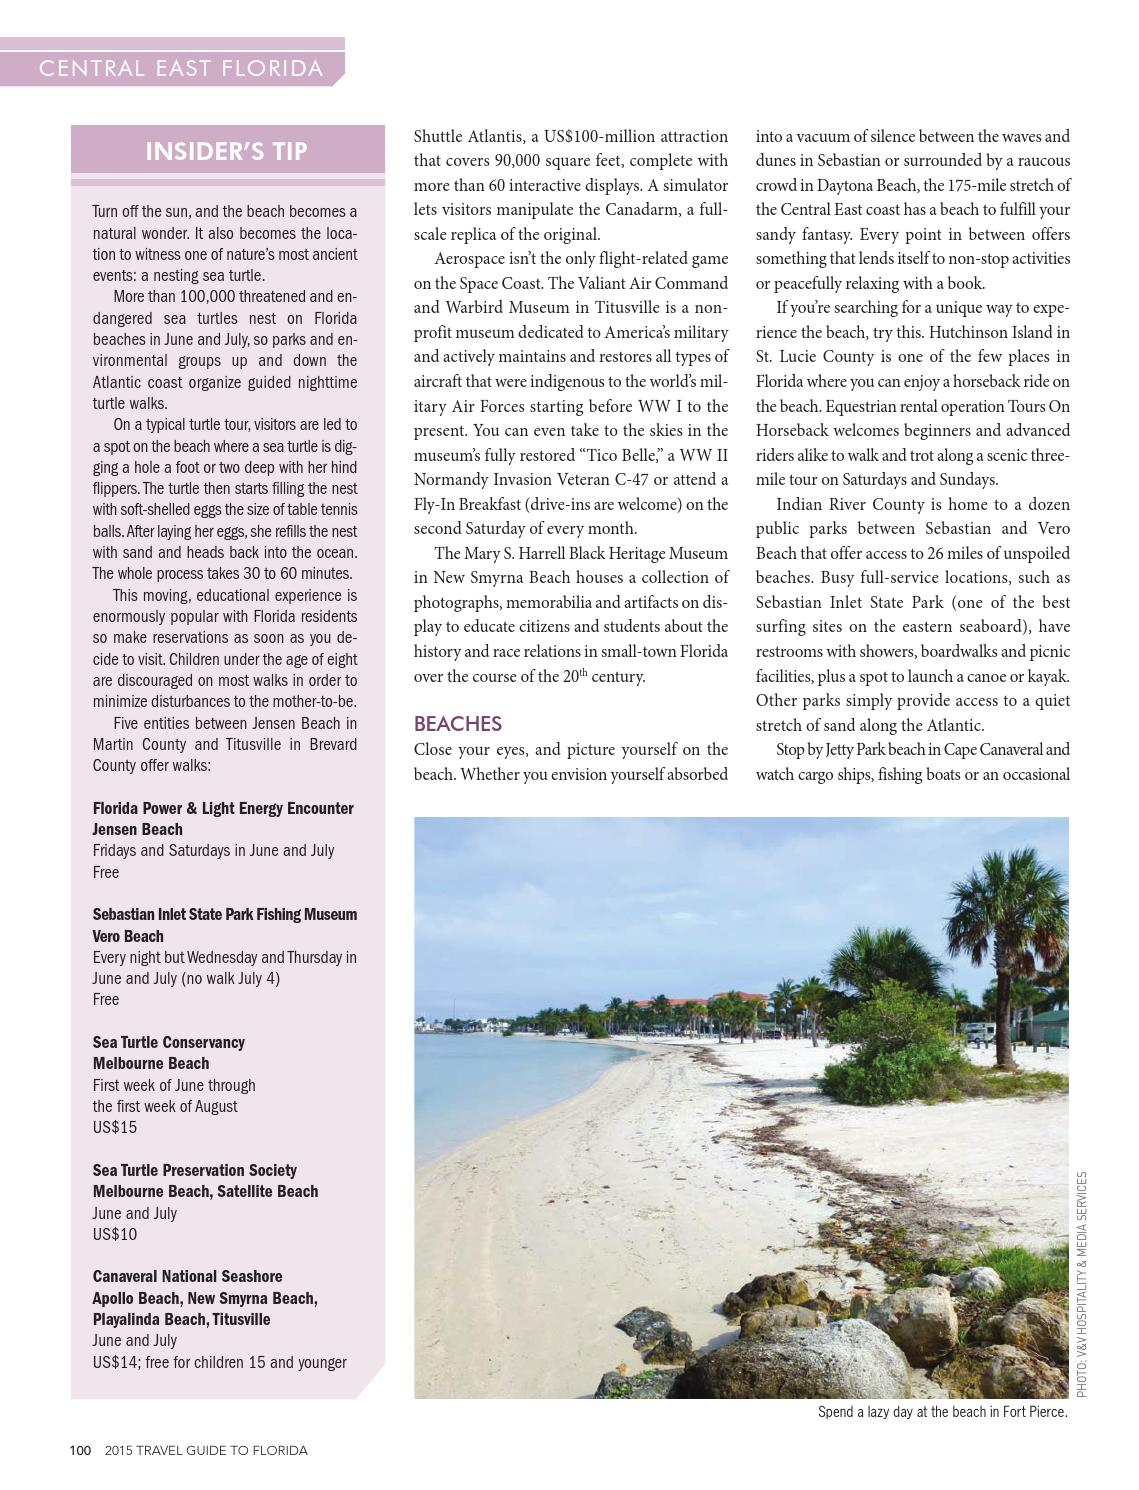 2015 Travel Guide to Florida by MarkintoshDesign - issuu